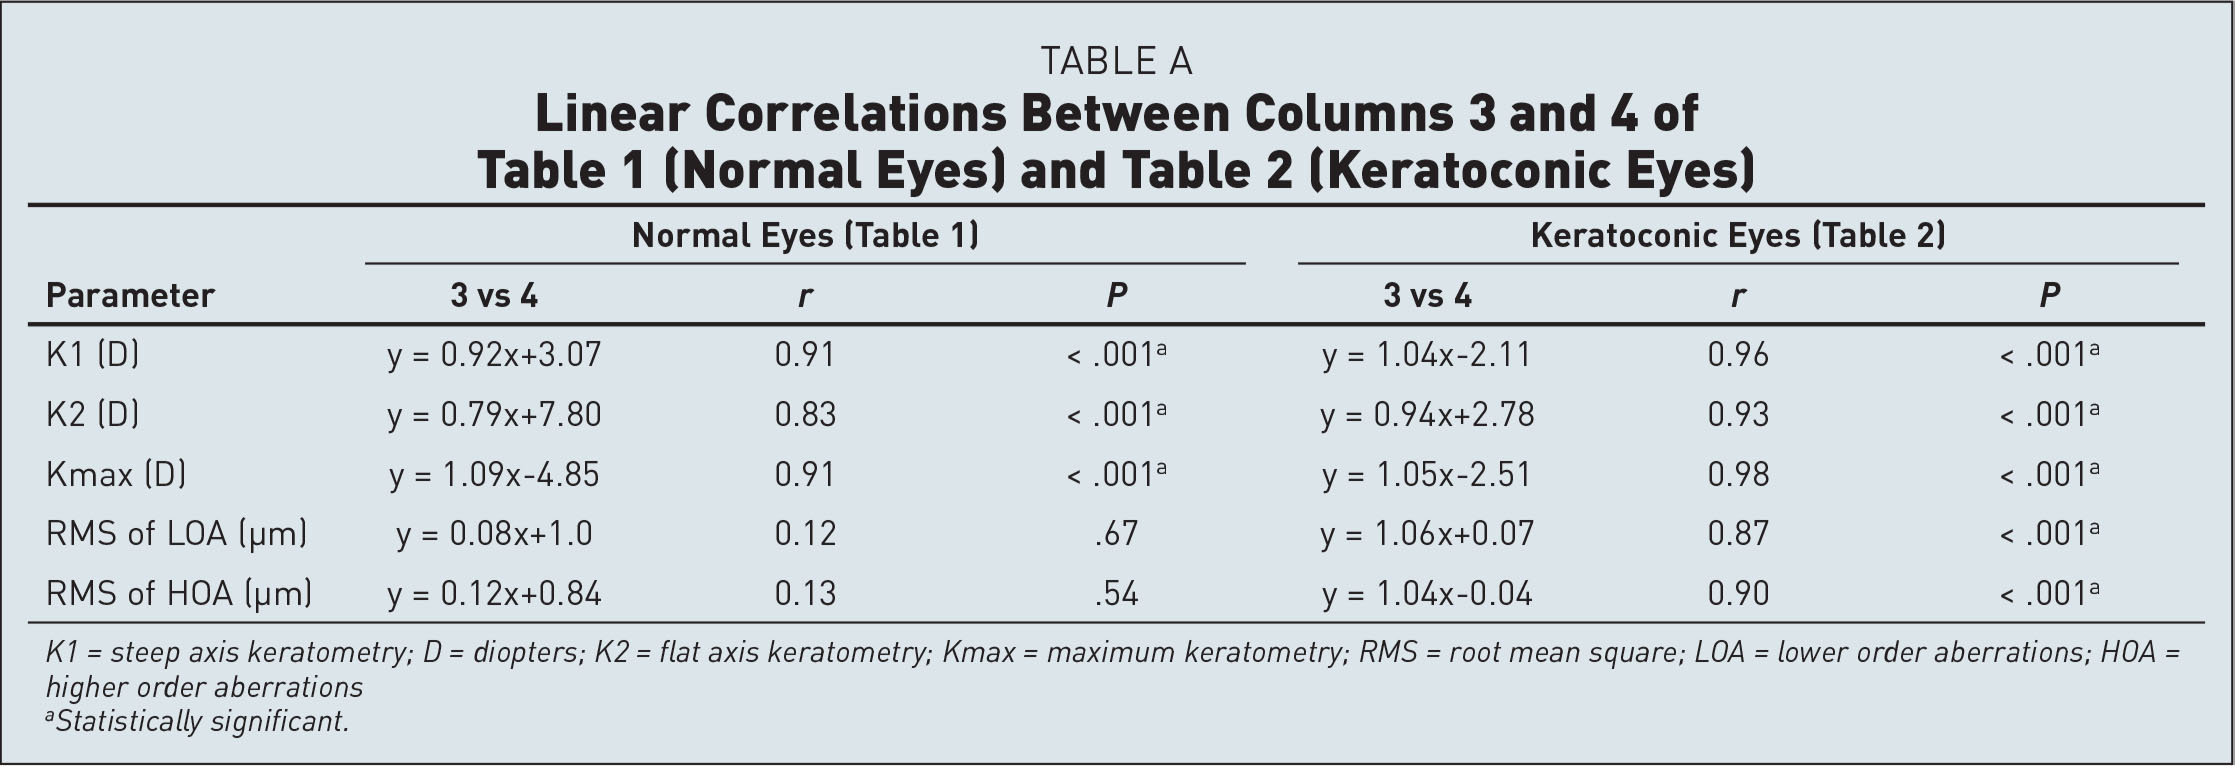 Linear Correlations Between Columns 3 and 4 of Table 1 (Normal Eyes) and Table 2 (Keratoconic Eyes)